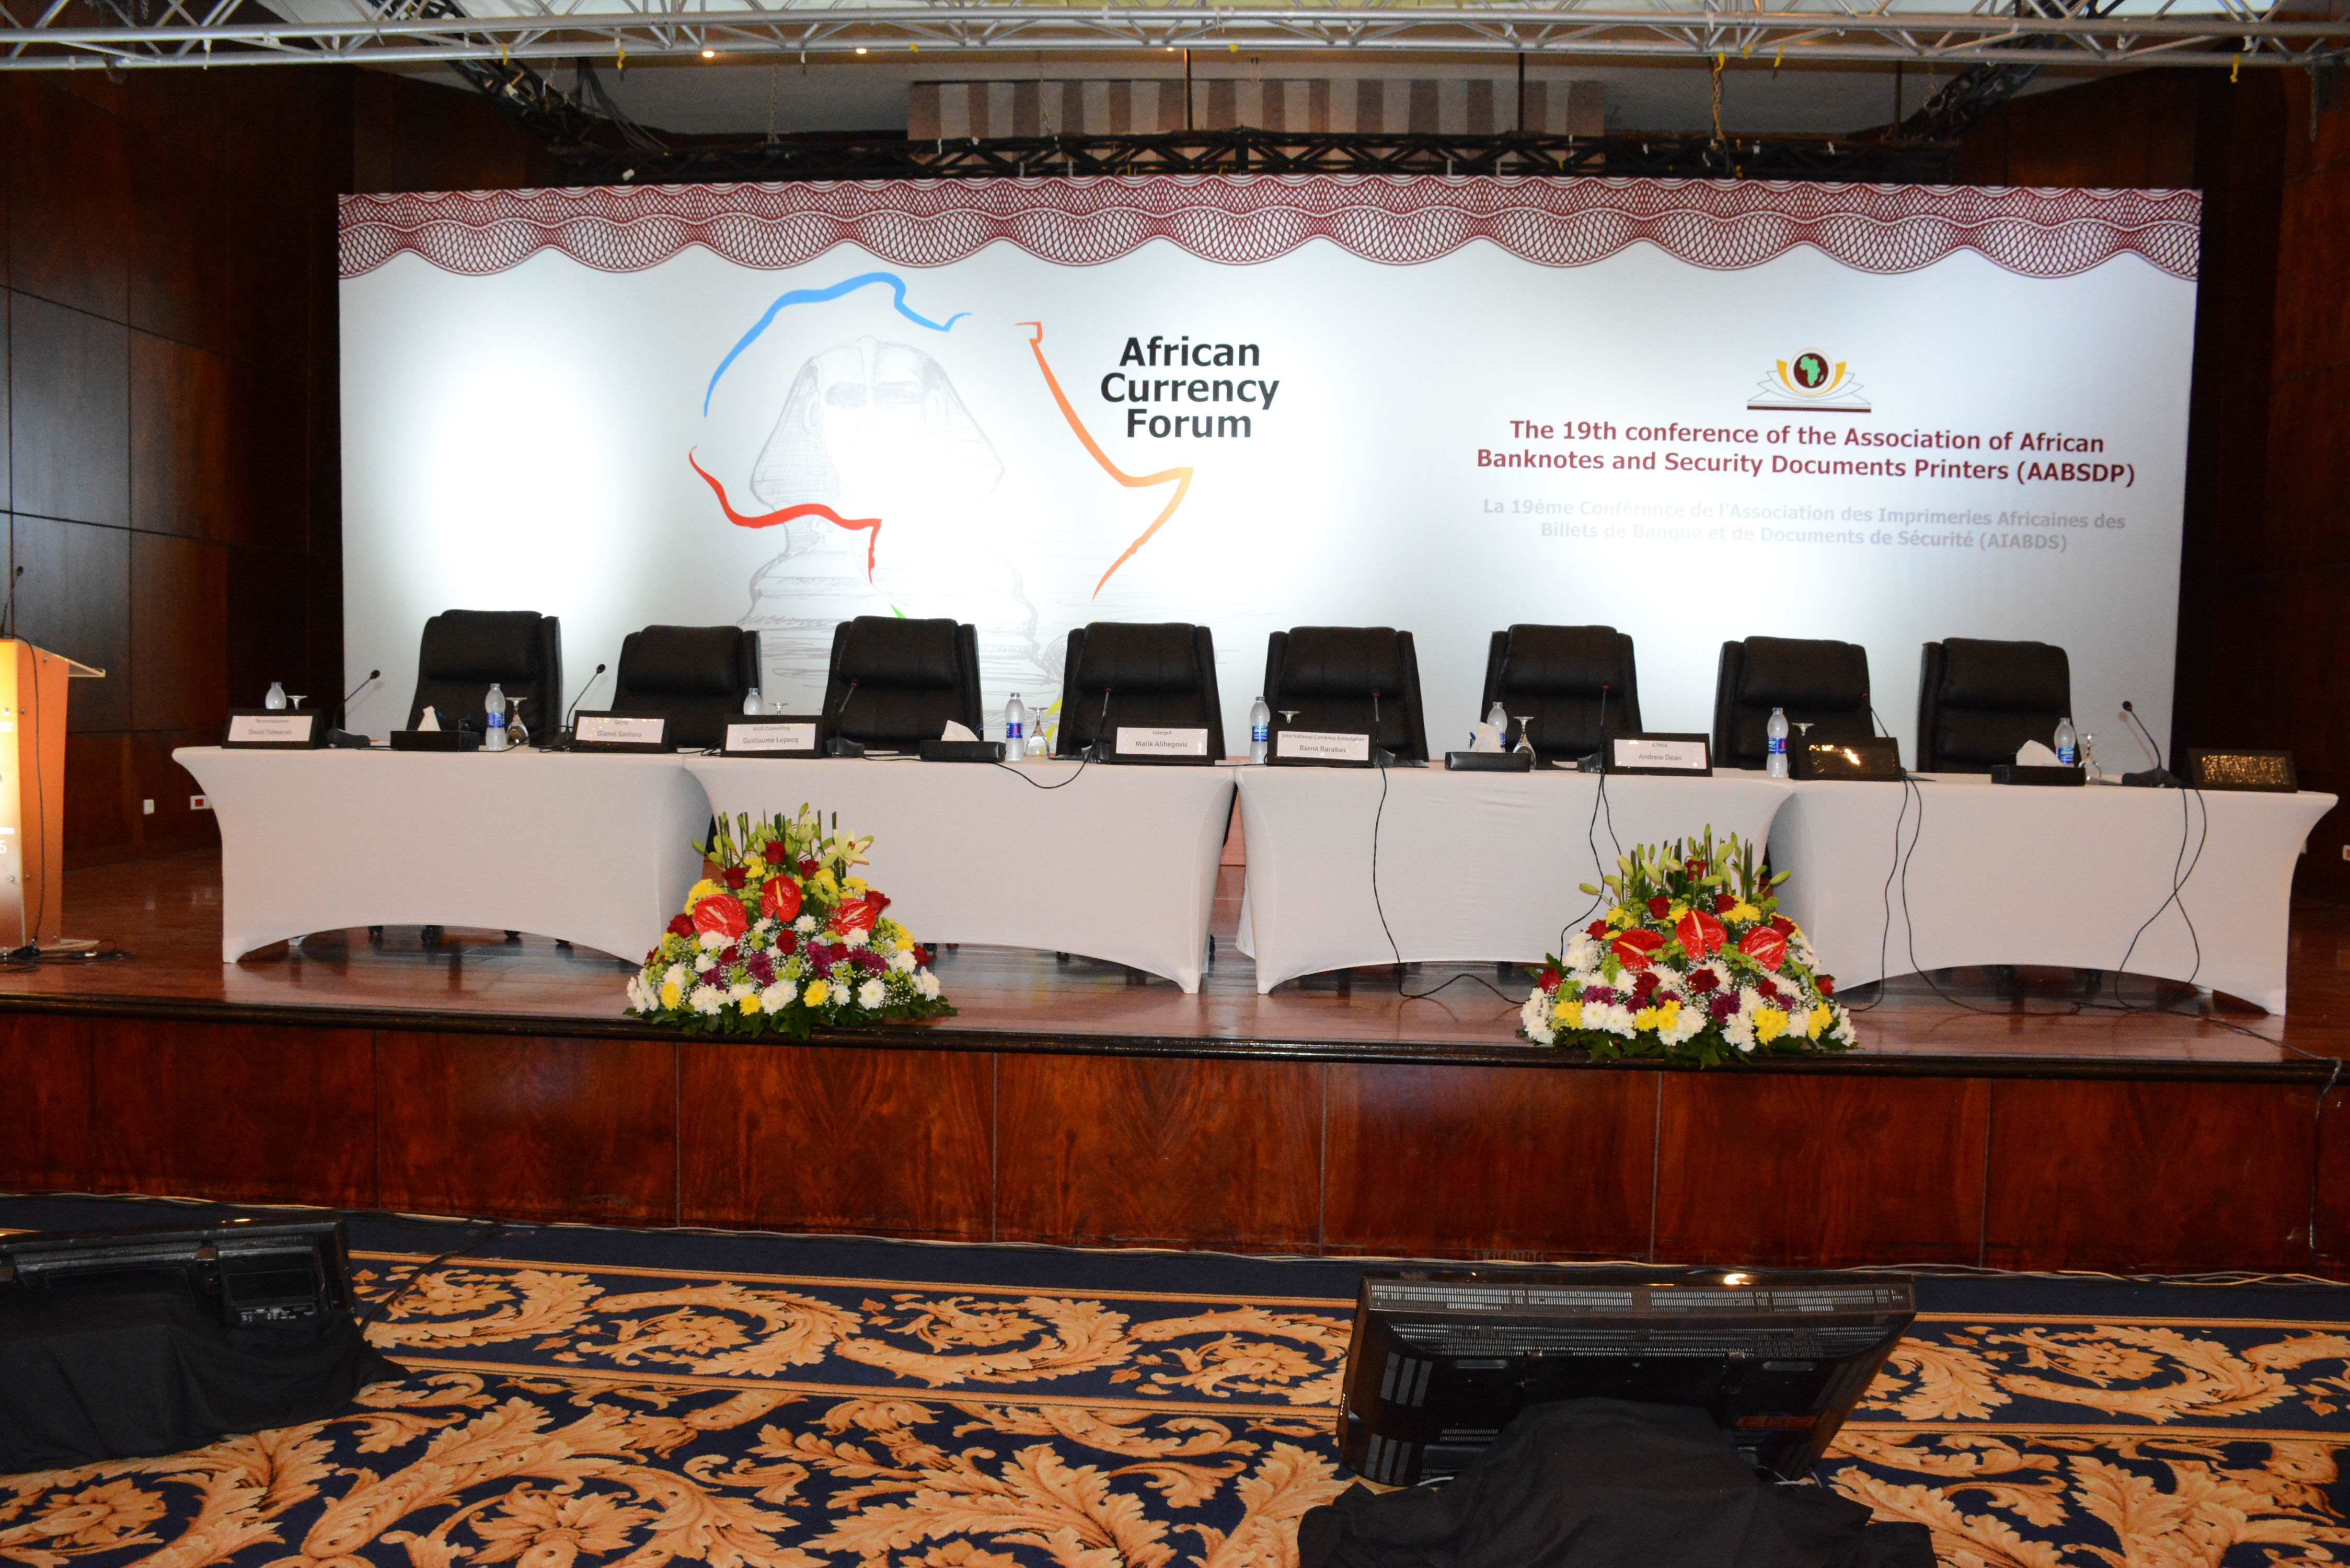 African Currency Forum Conference